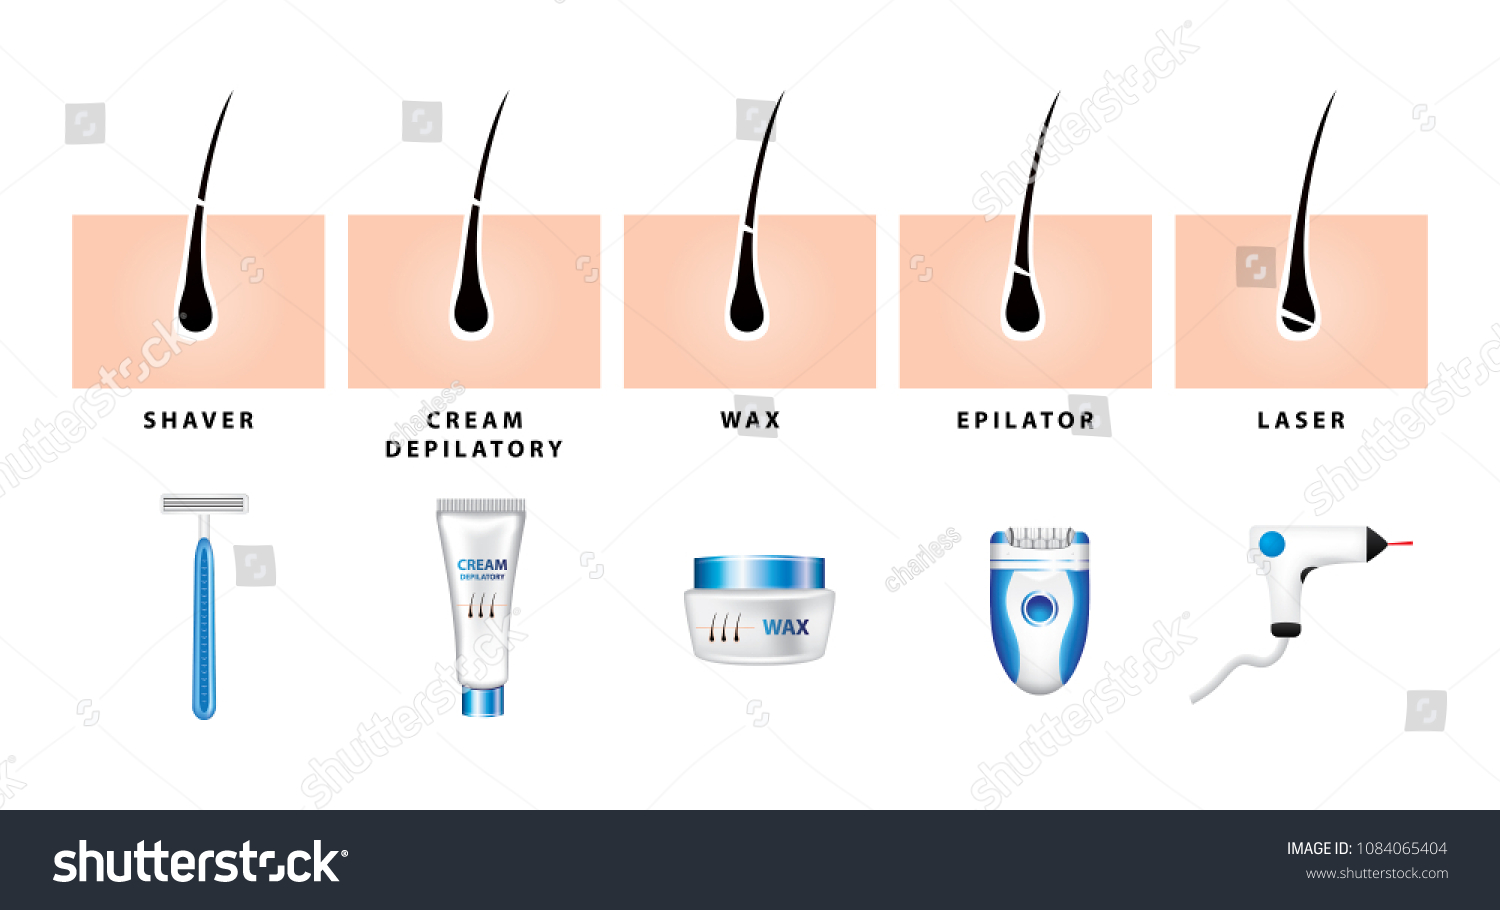 hair removal shaving wax depilatory cream stock vector (royalty freehair removal with shaving , wax , depilatory cream and epilator vector illustration